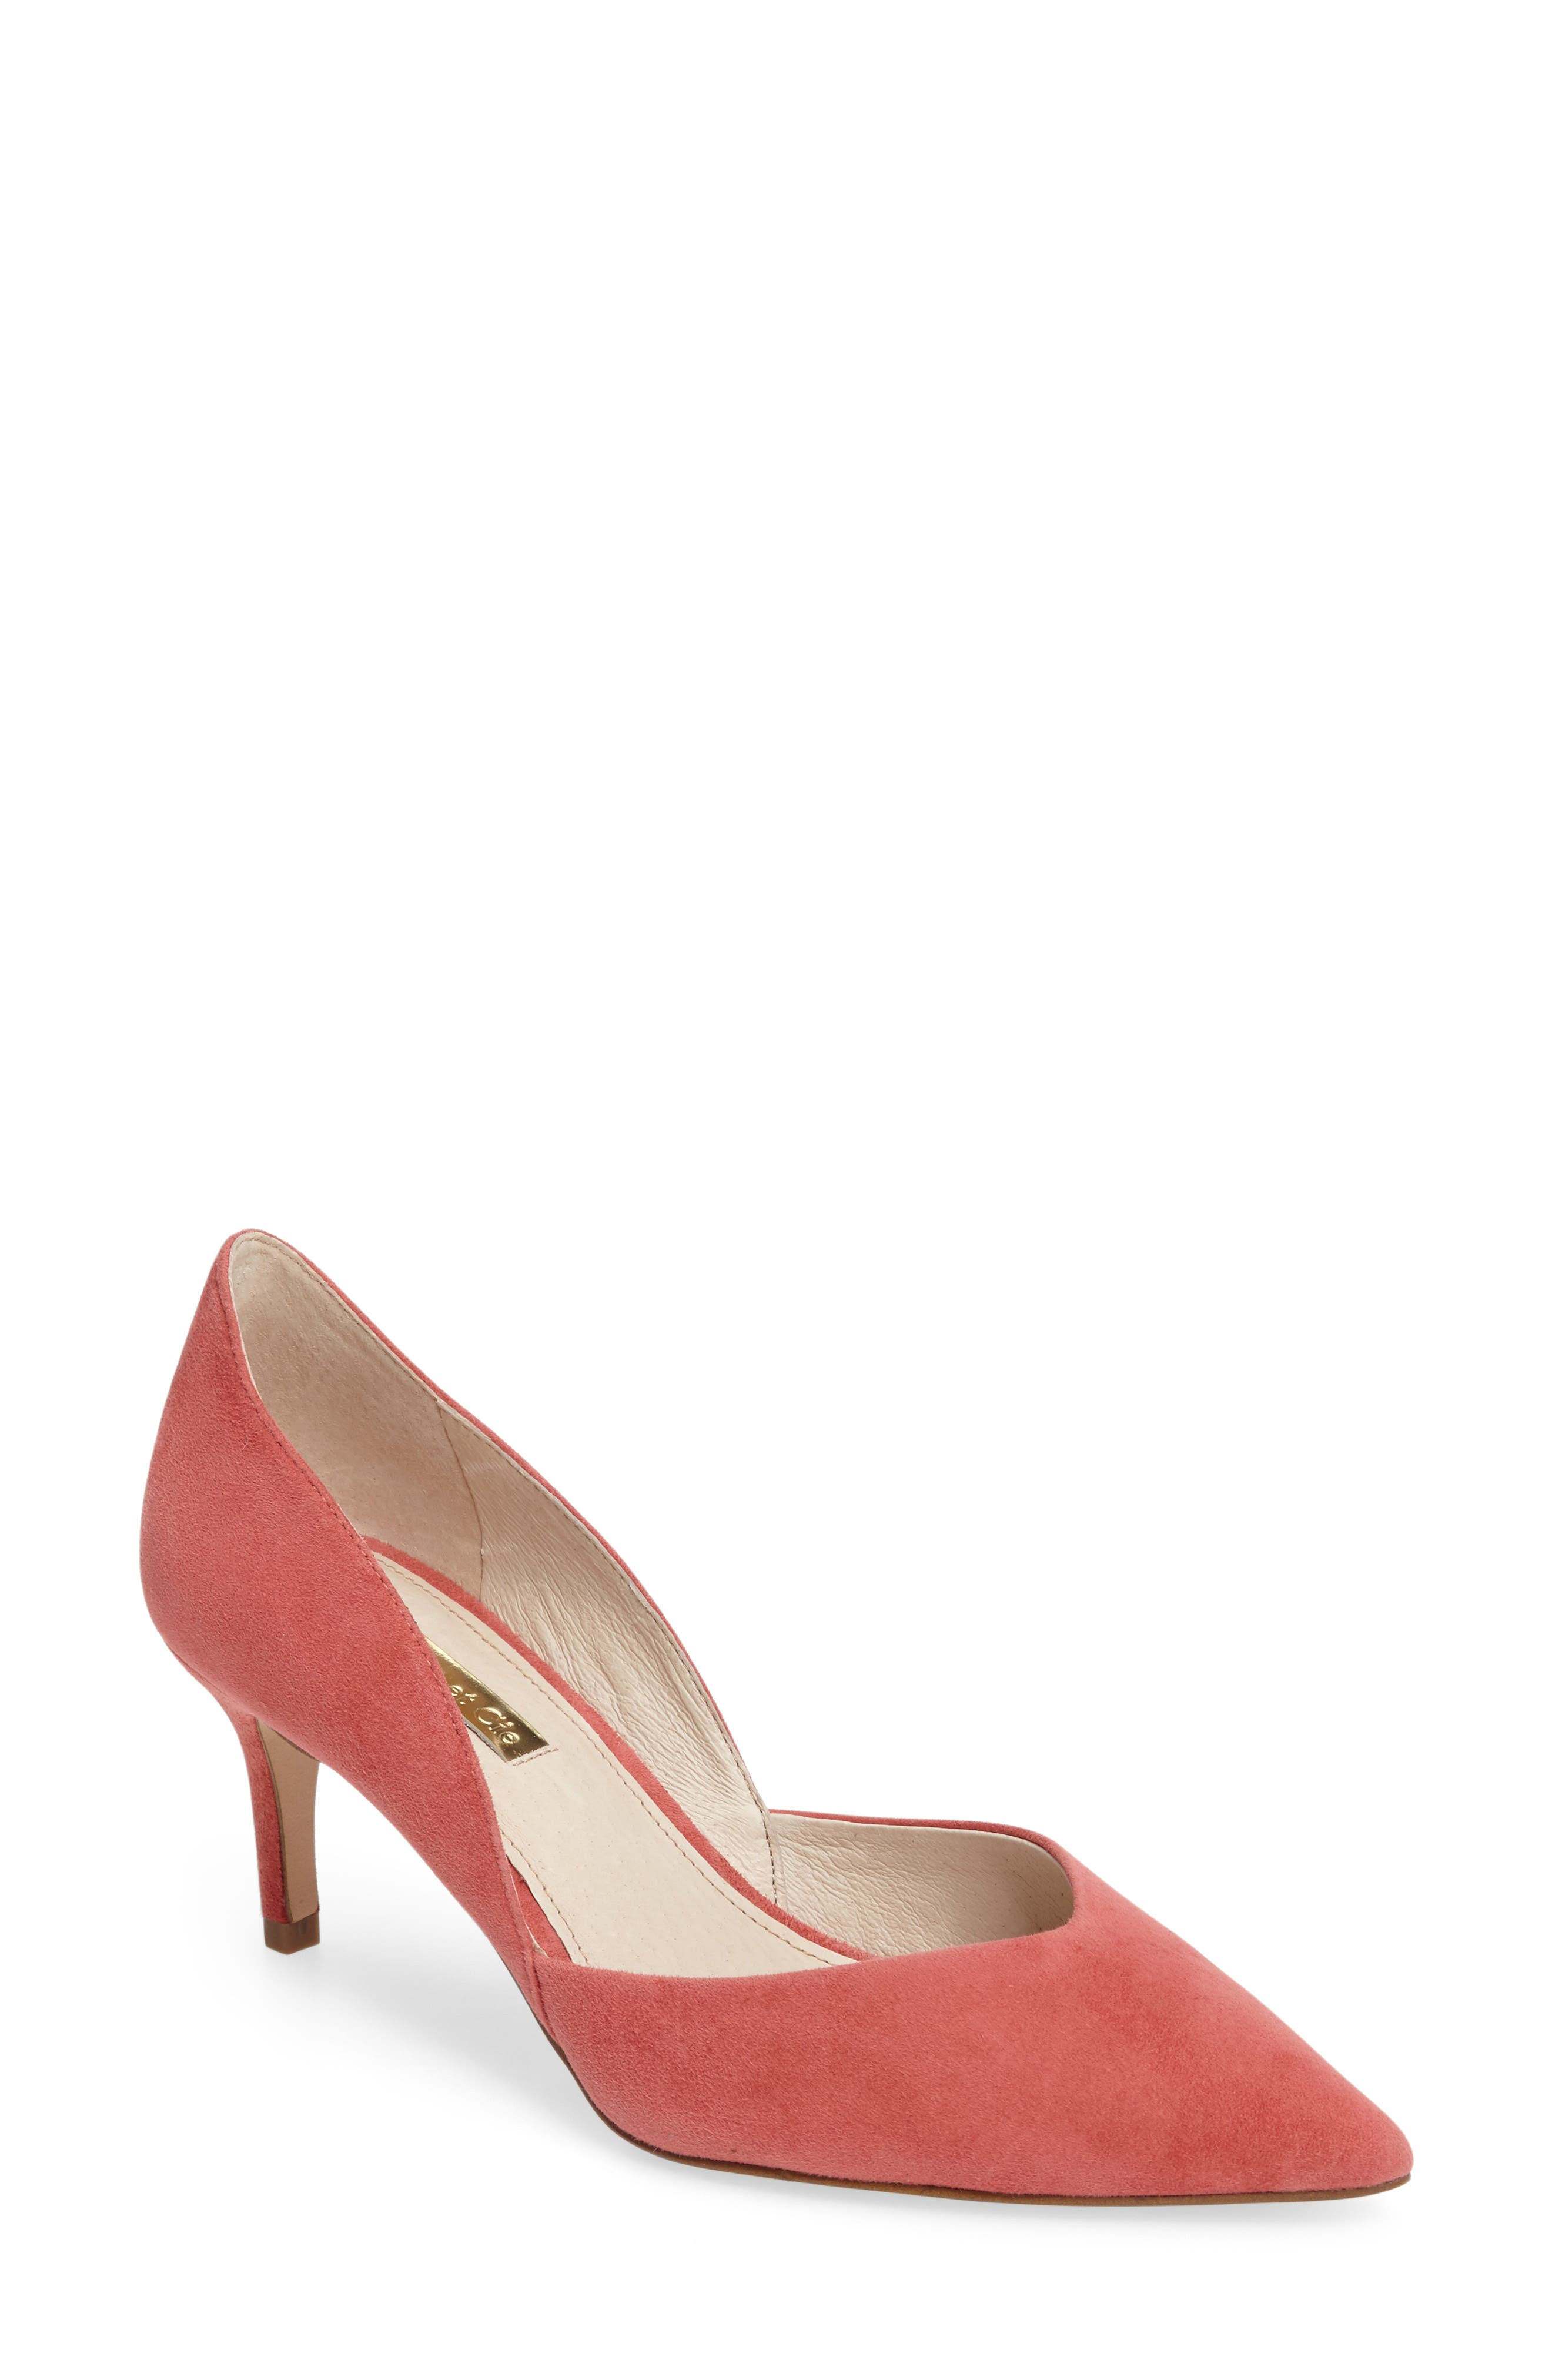 Alternate Image 1 Selected - Louise et Cie Jacee Pointy Toe Pump (Women)